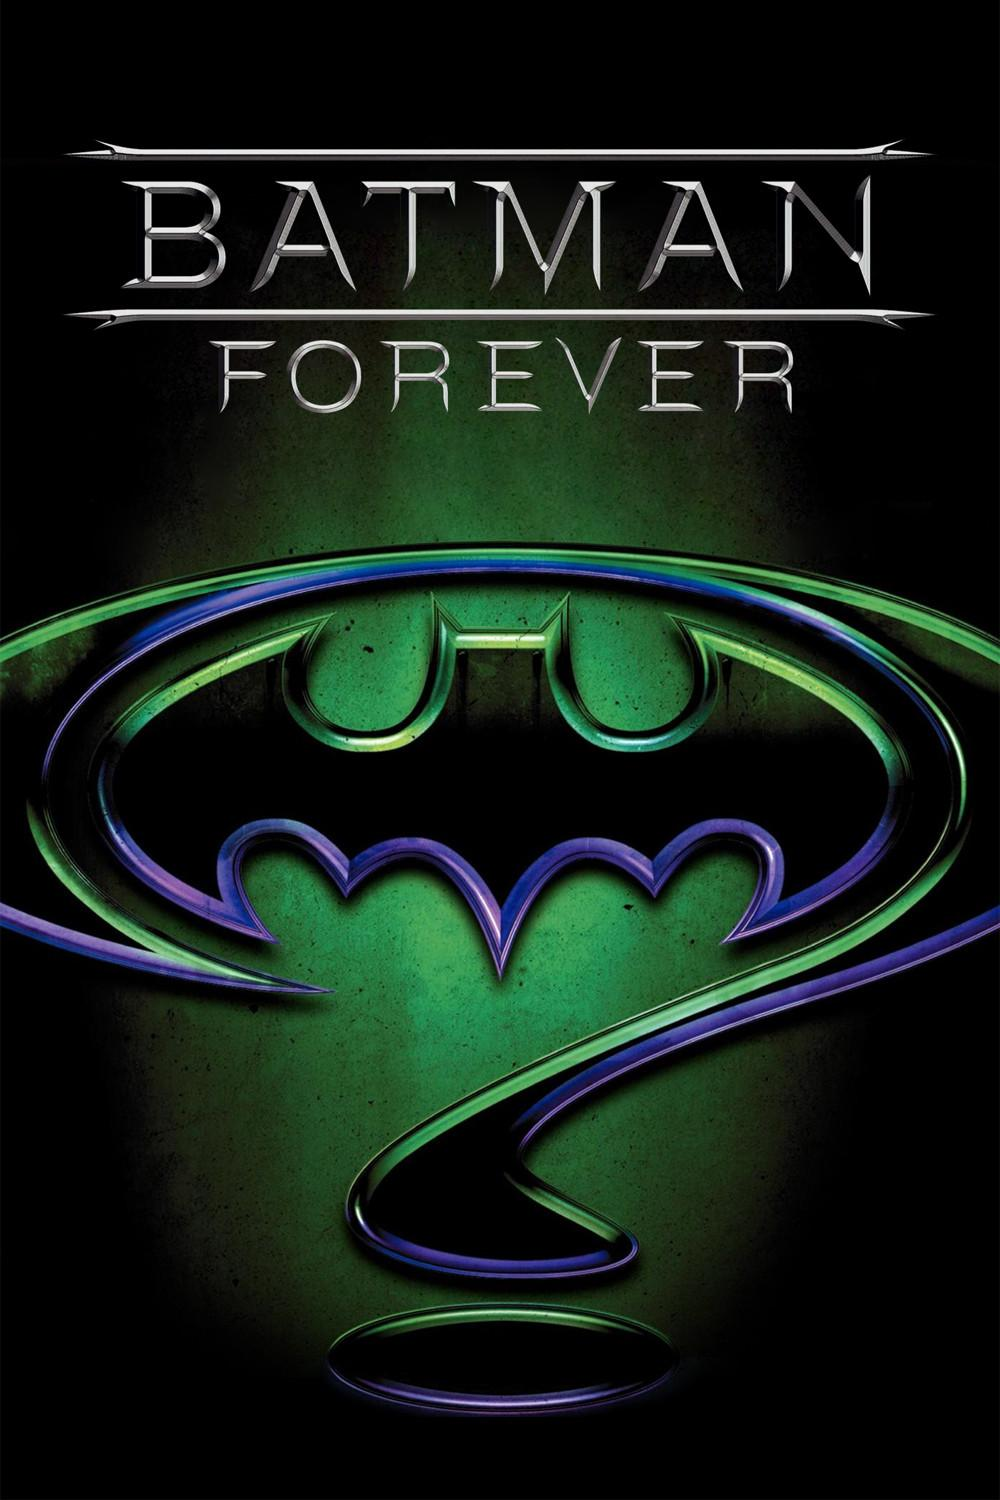 Batman Forever Teaser images